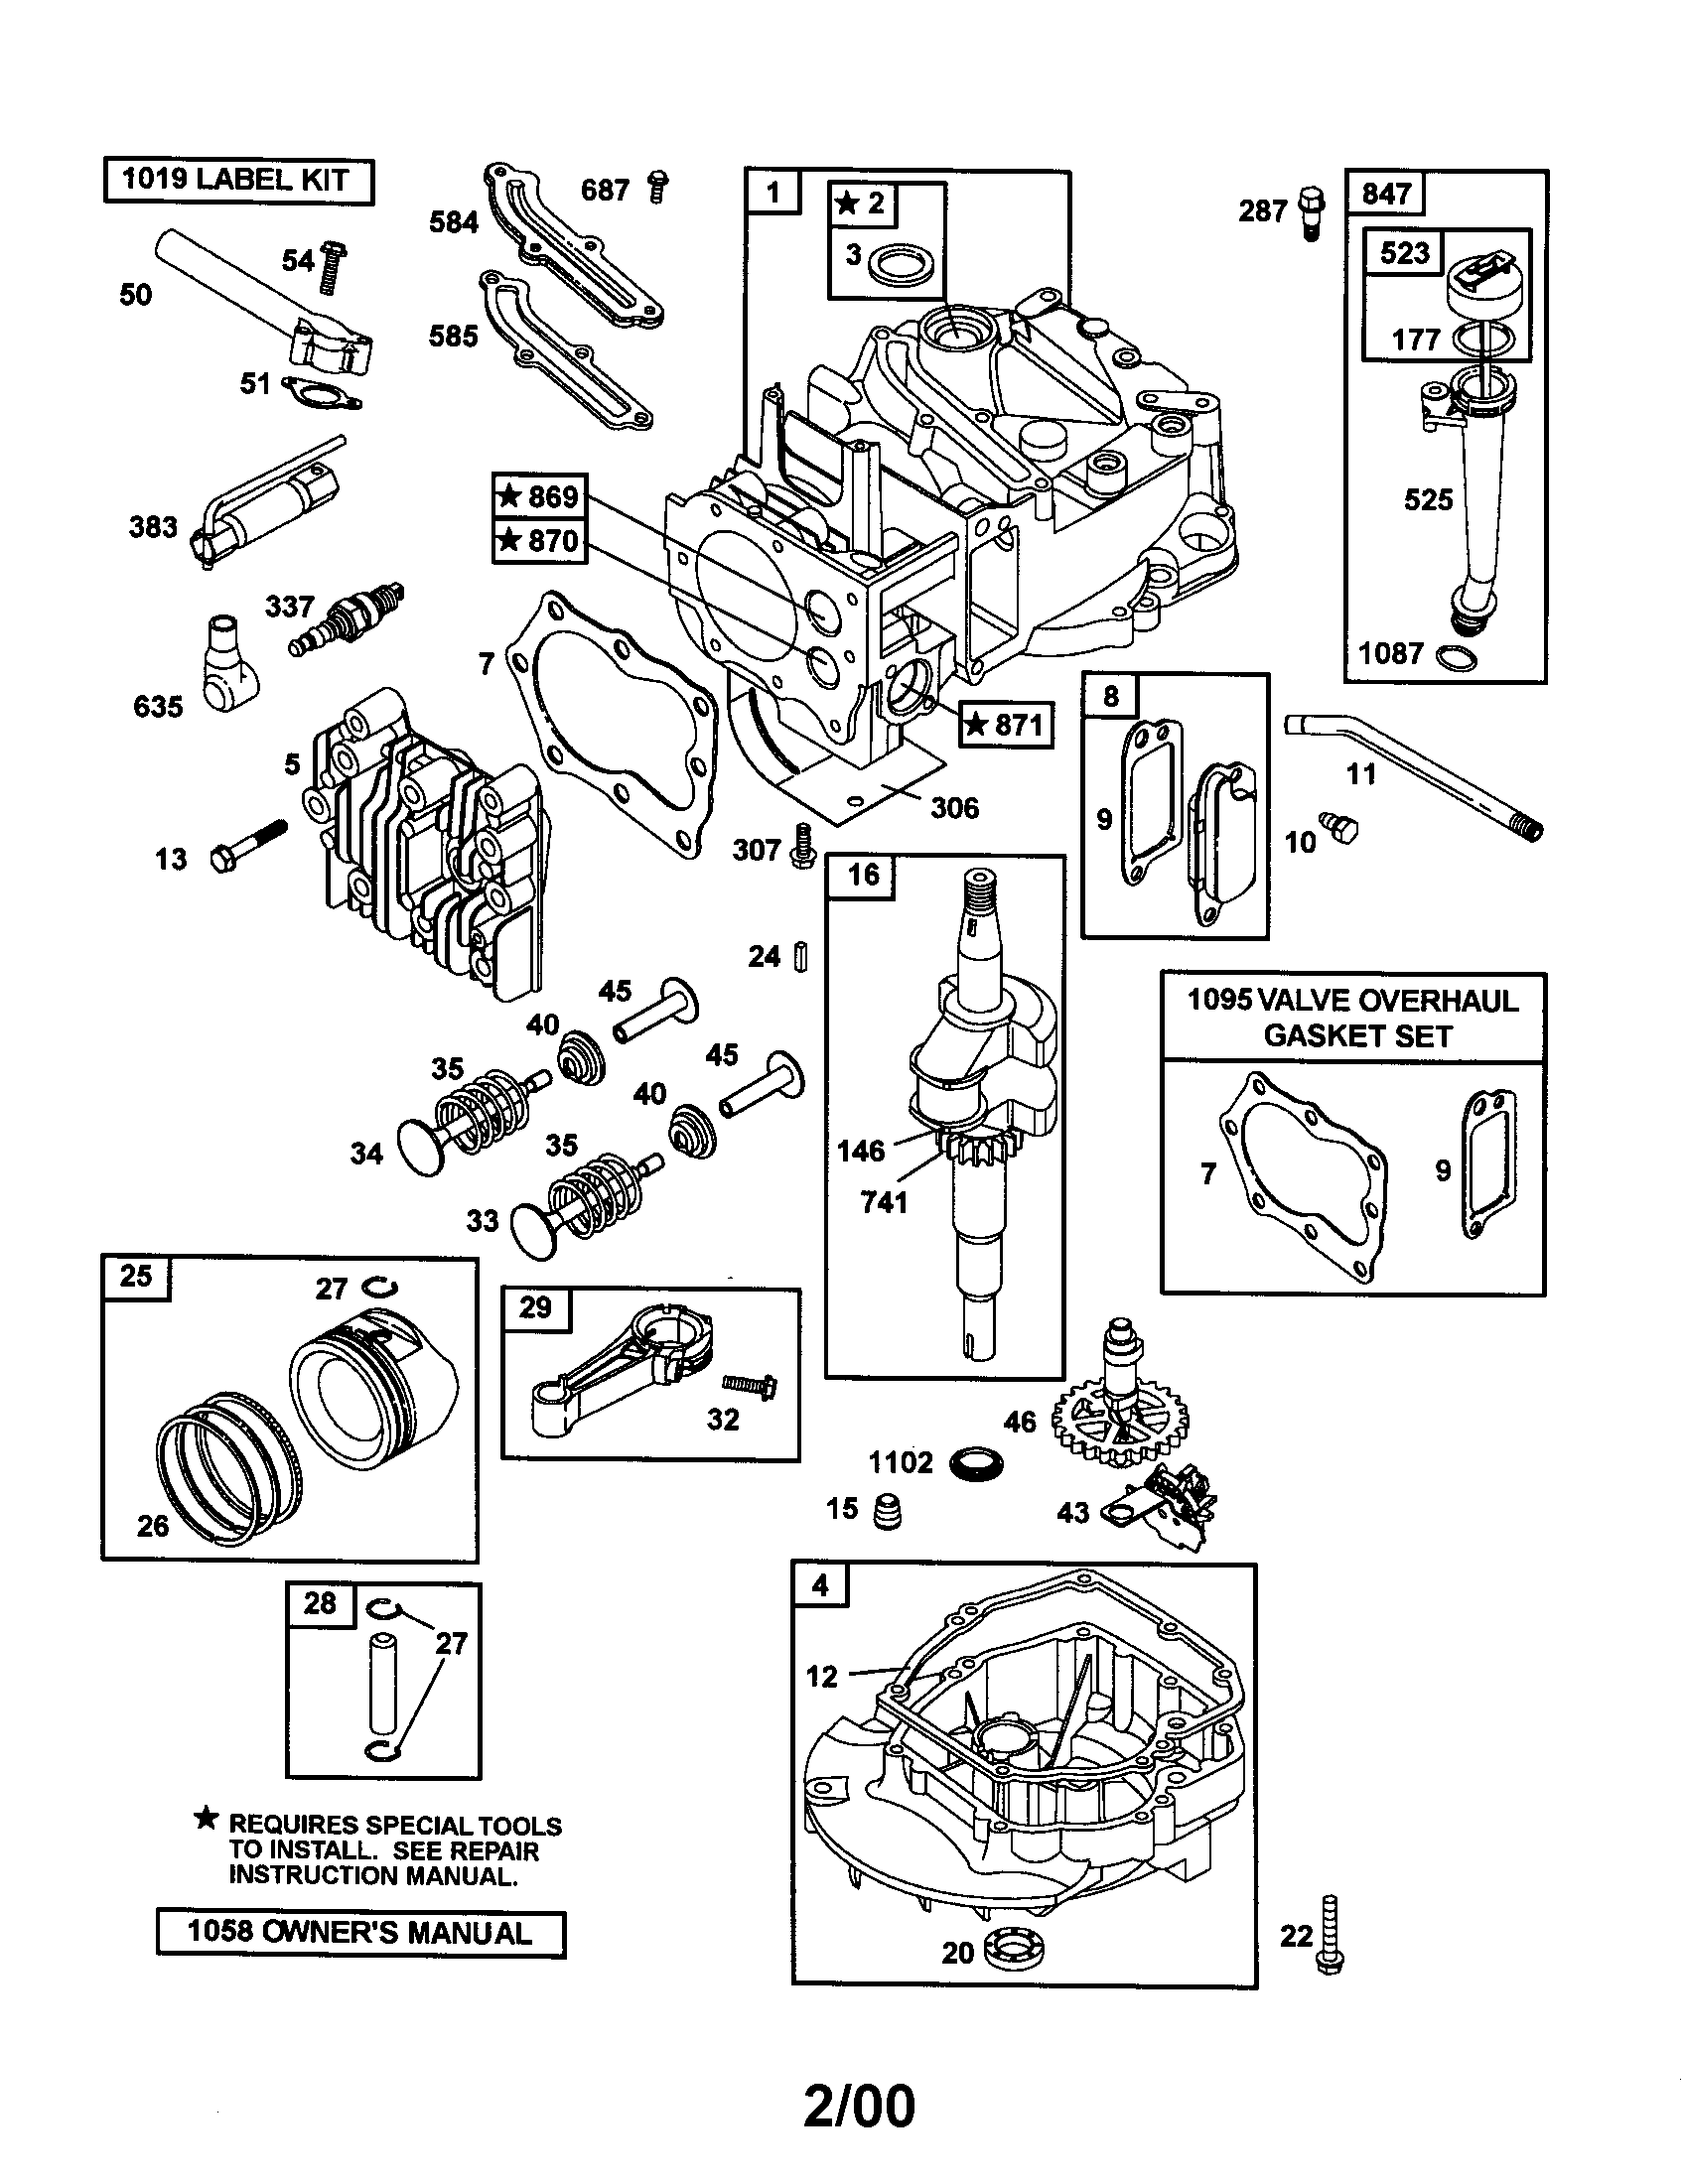 briggs and stratton engine parts diagram of spine discs model 12h802 2682 b1